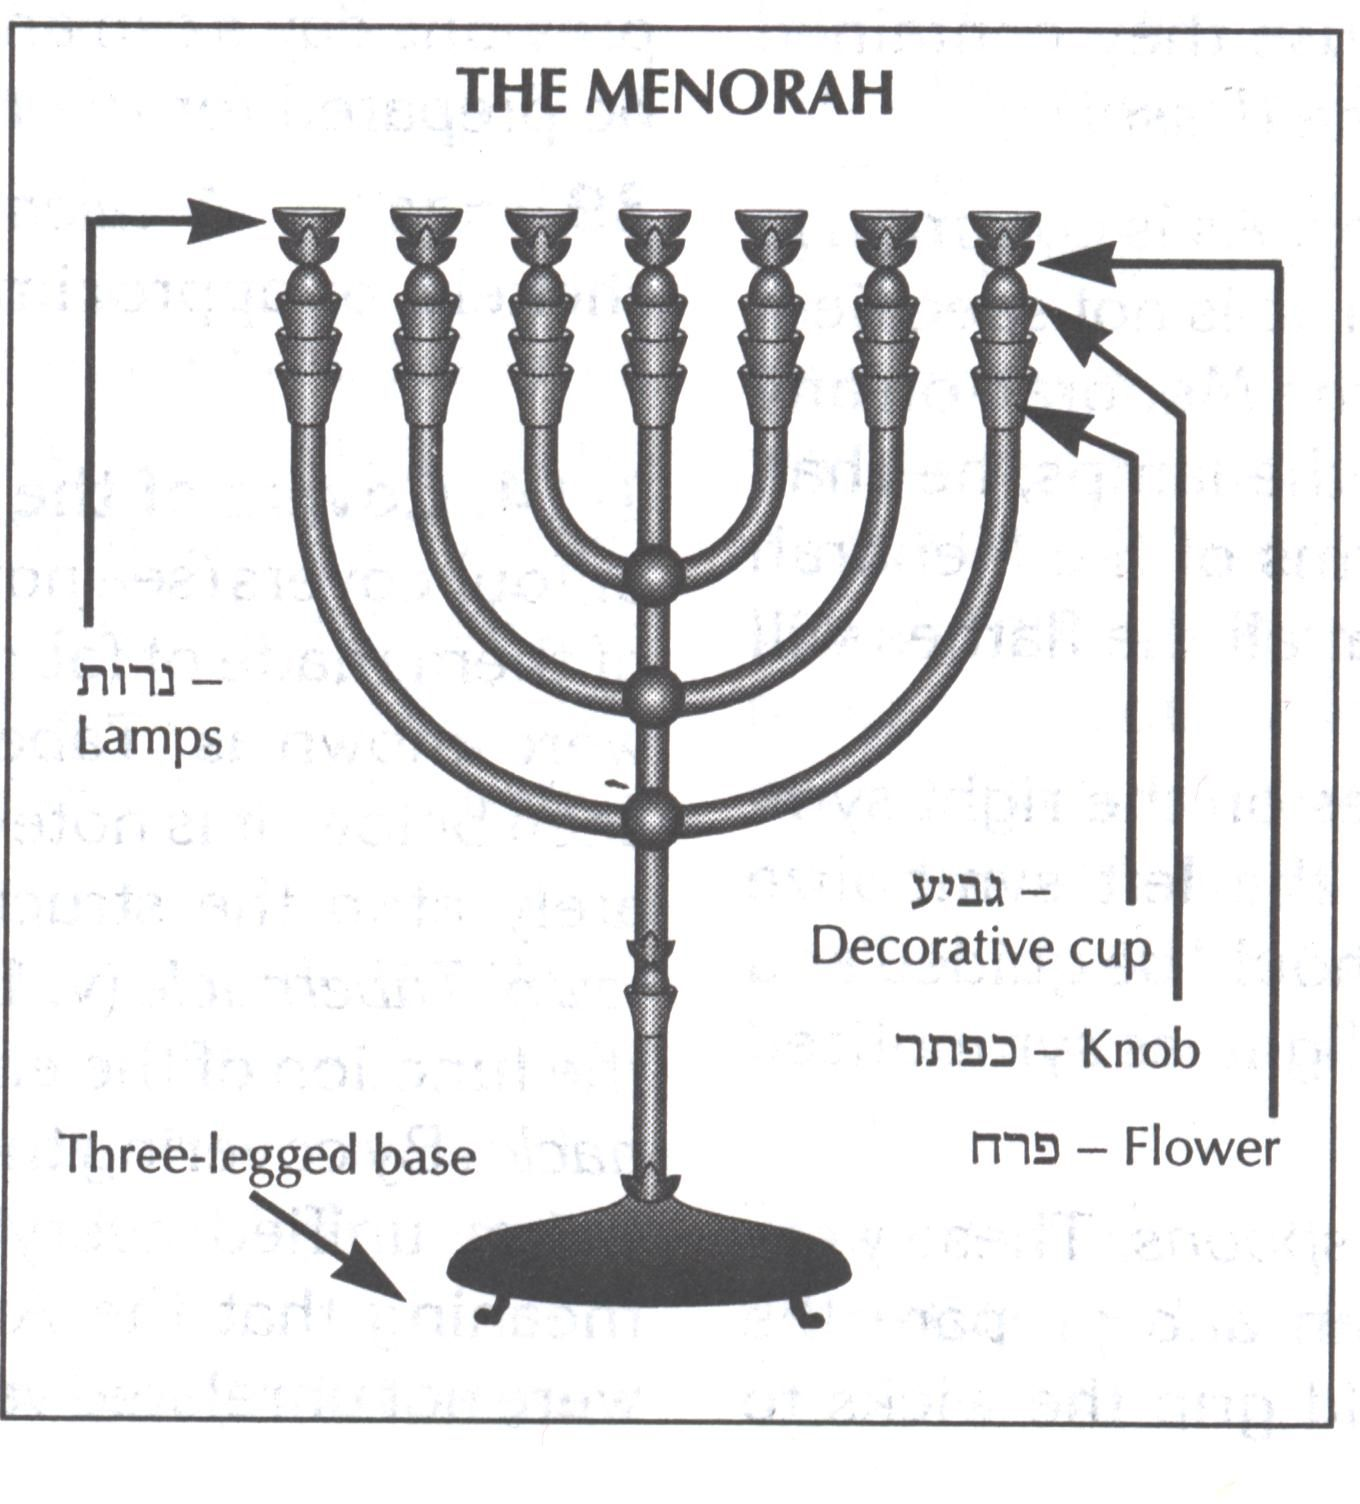 menorah lighting diagram auto electrical wiring diagram u2022 rh focusnews co Menorah Candles Menorah Candles